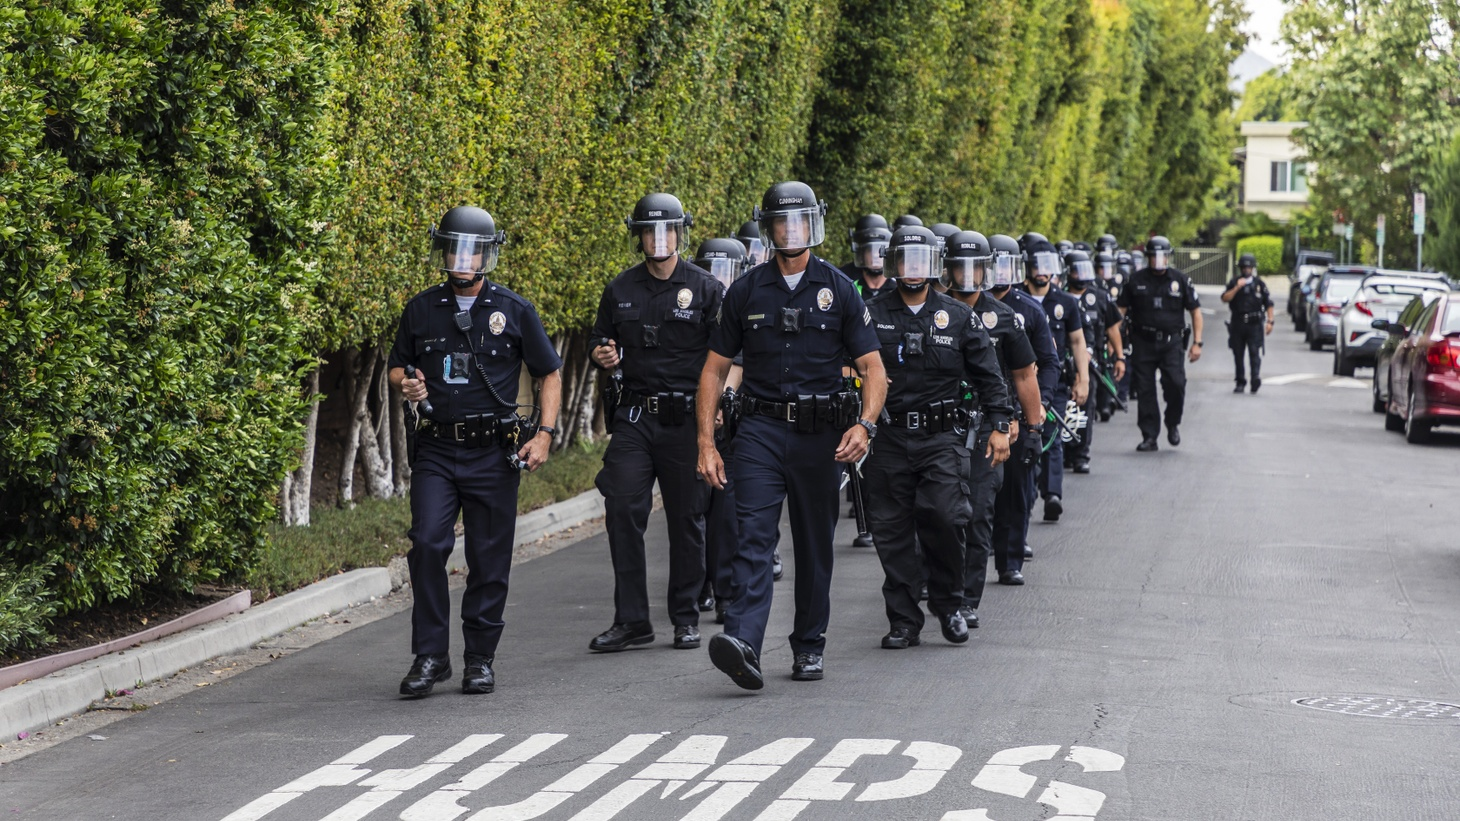 A large demonstration was held outside the residence of LA Mayor Eric Garcetti. The crowd called on Garcetti to fire LAPD chief Michel Moore, following Moore's comments on protestors. June 2, 2020, Los Angeles, CA.